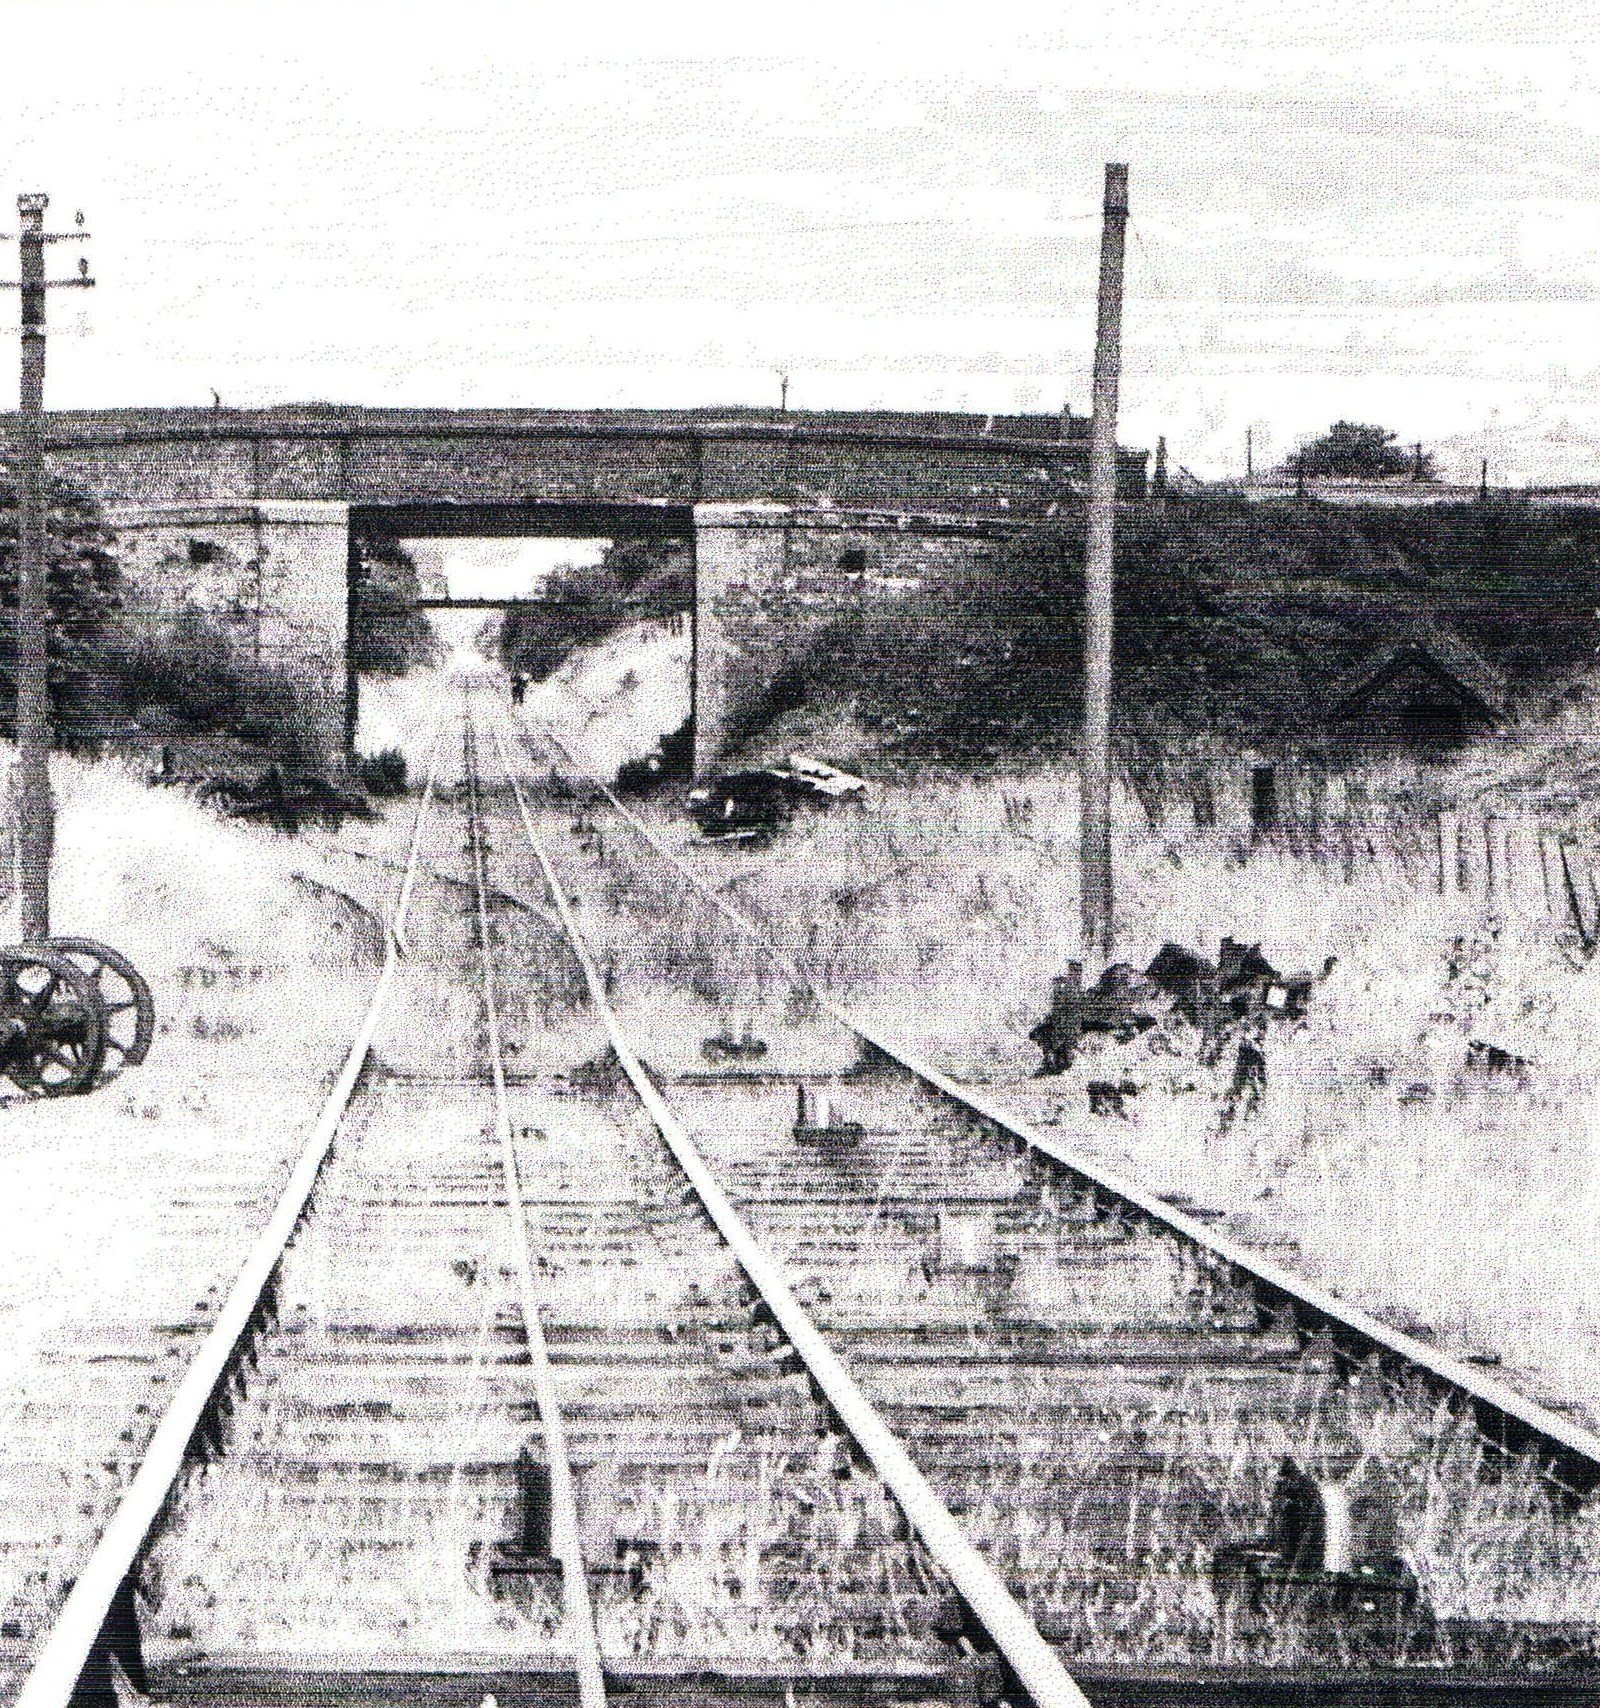 This photo shows the old railway at Clee Hill just before closure in 1961.